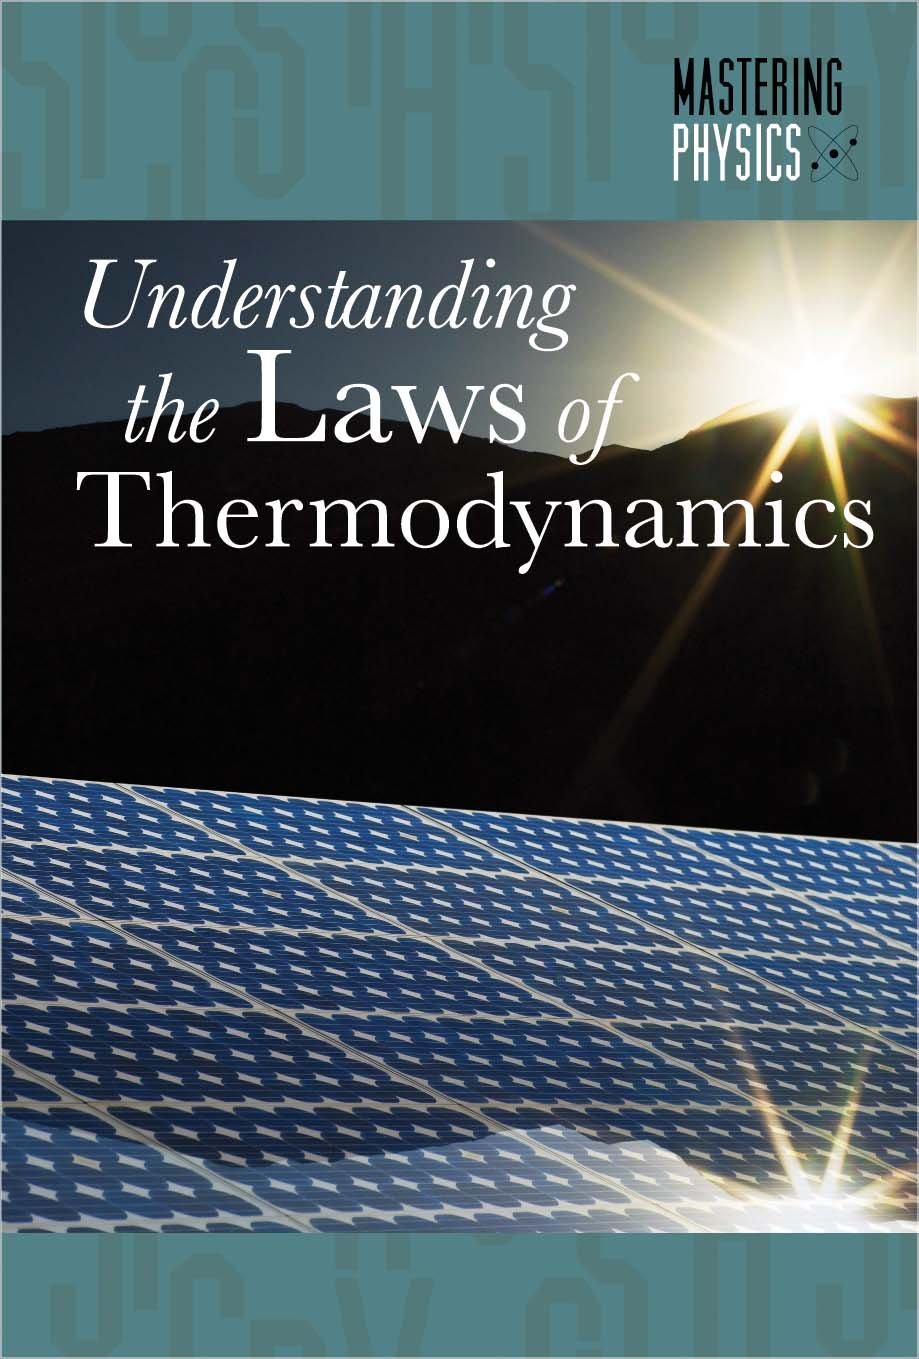 Download Understanding the Laws of Thermodynamics (Mastering Physics) pdf epub